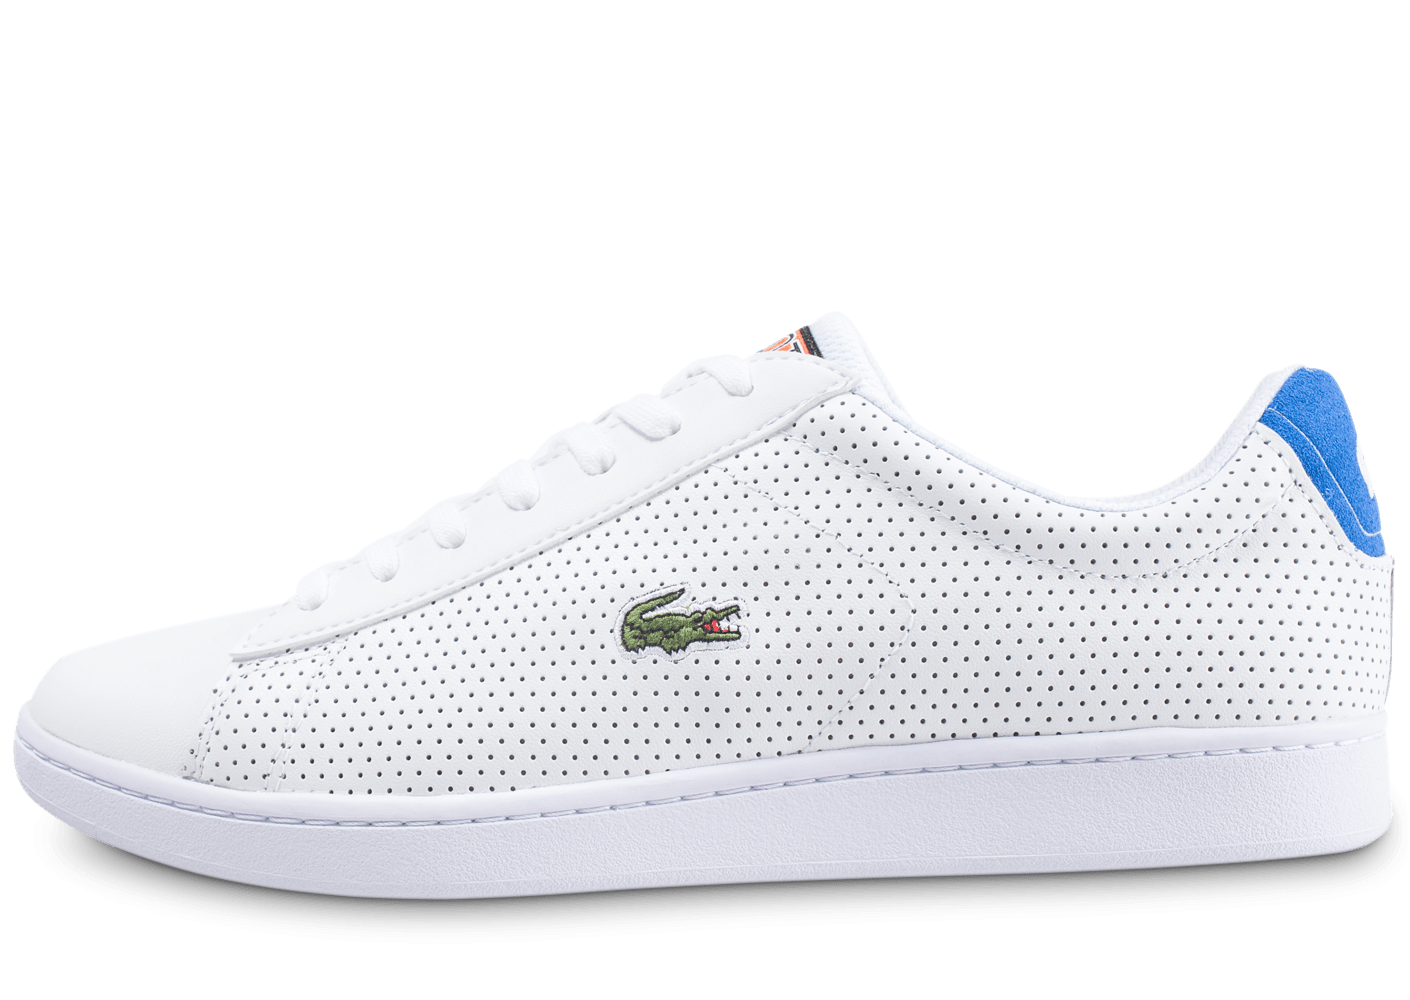 1f5b466f354 Lacoste Carnaby Evo blanche et bleu turquoise - Chaussures Baskets homme -  Chausport